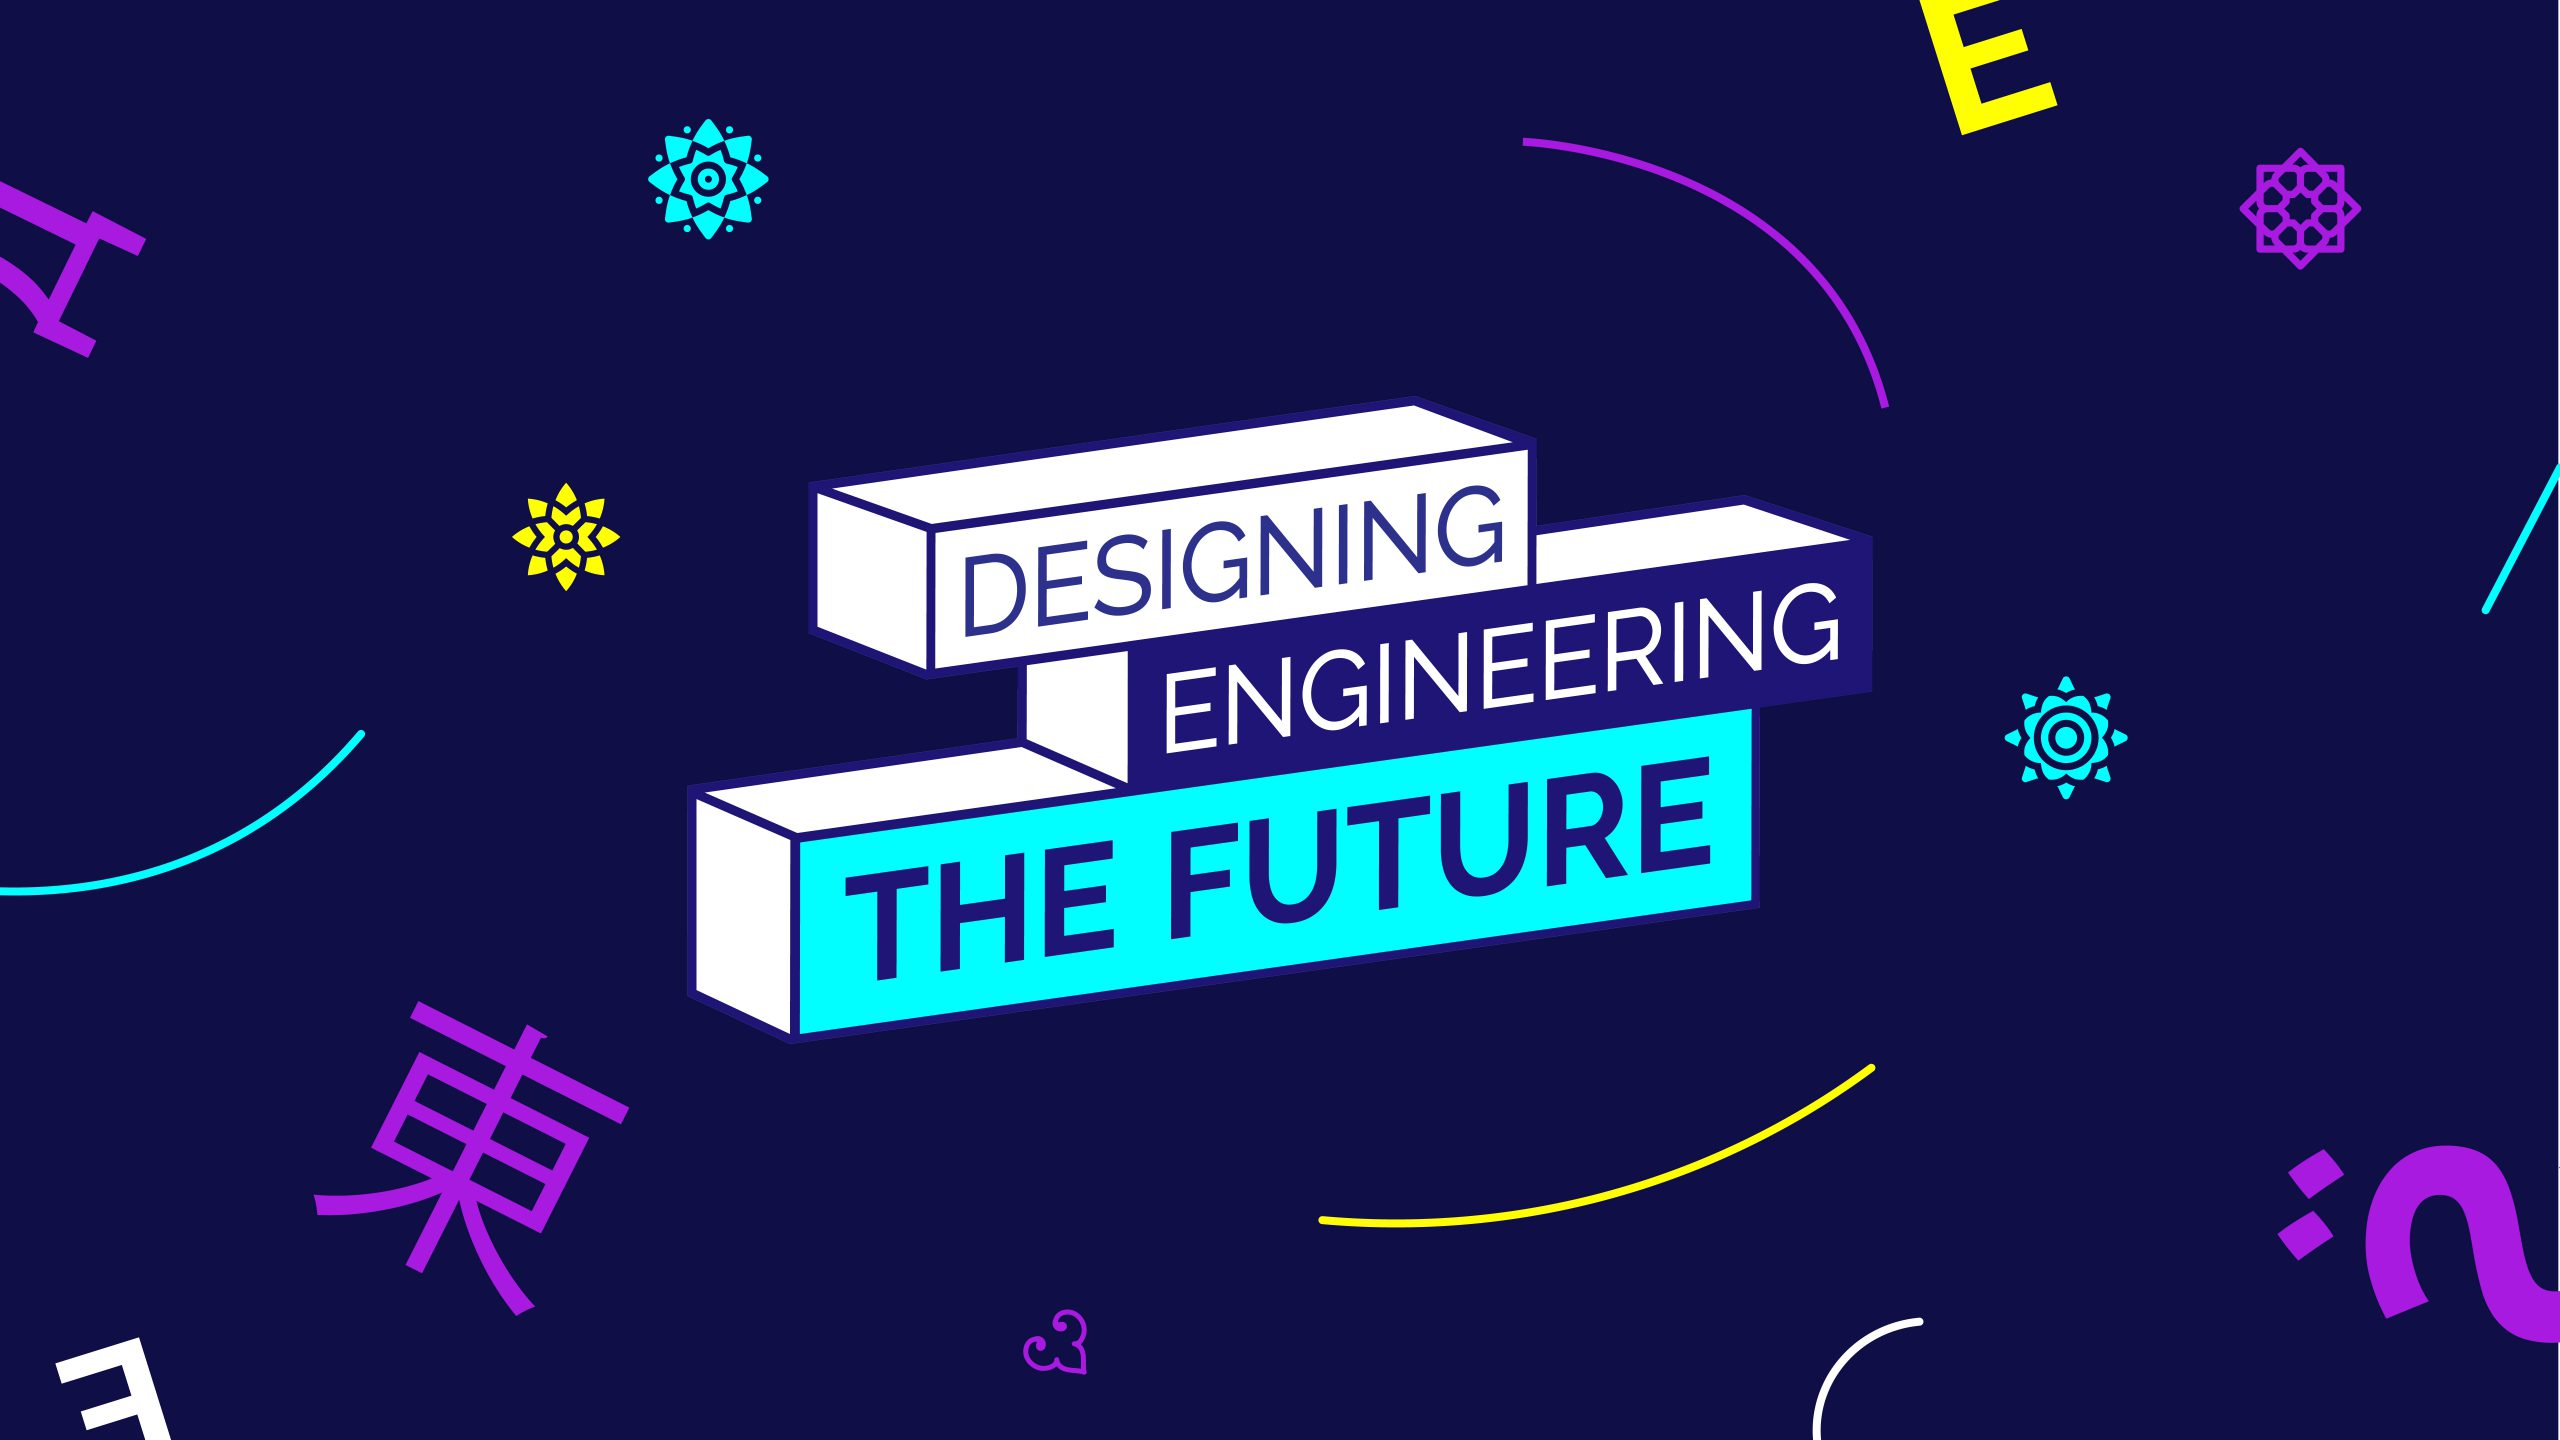 Cover of Tech Meets Design's flagship conference Designing Engineering the Future